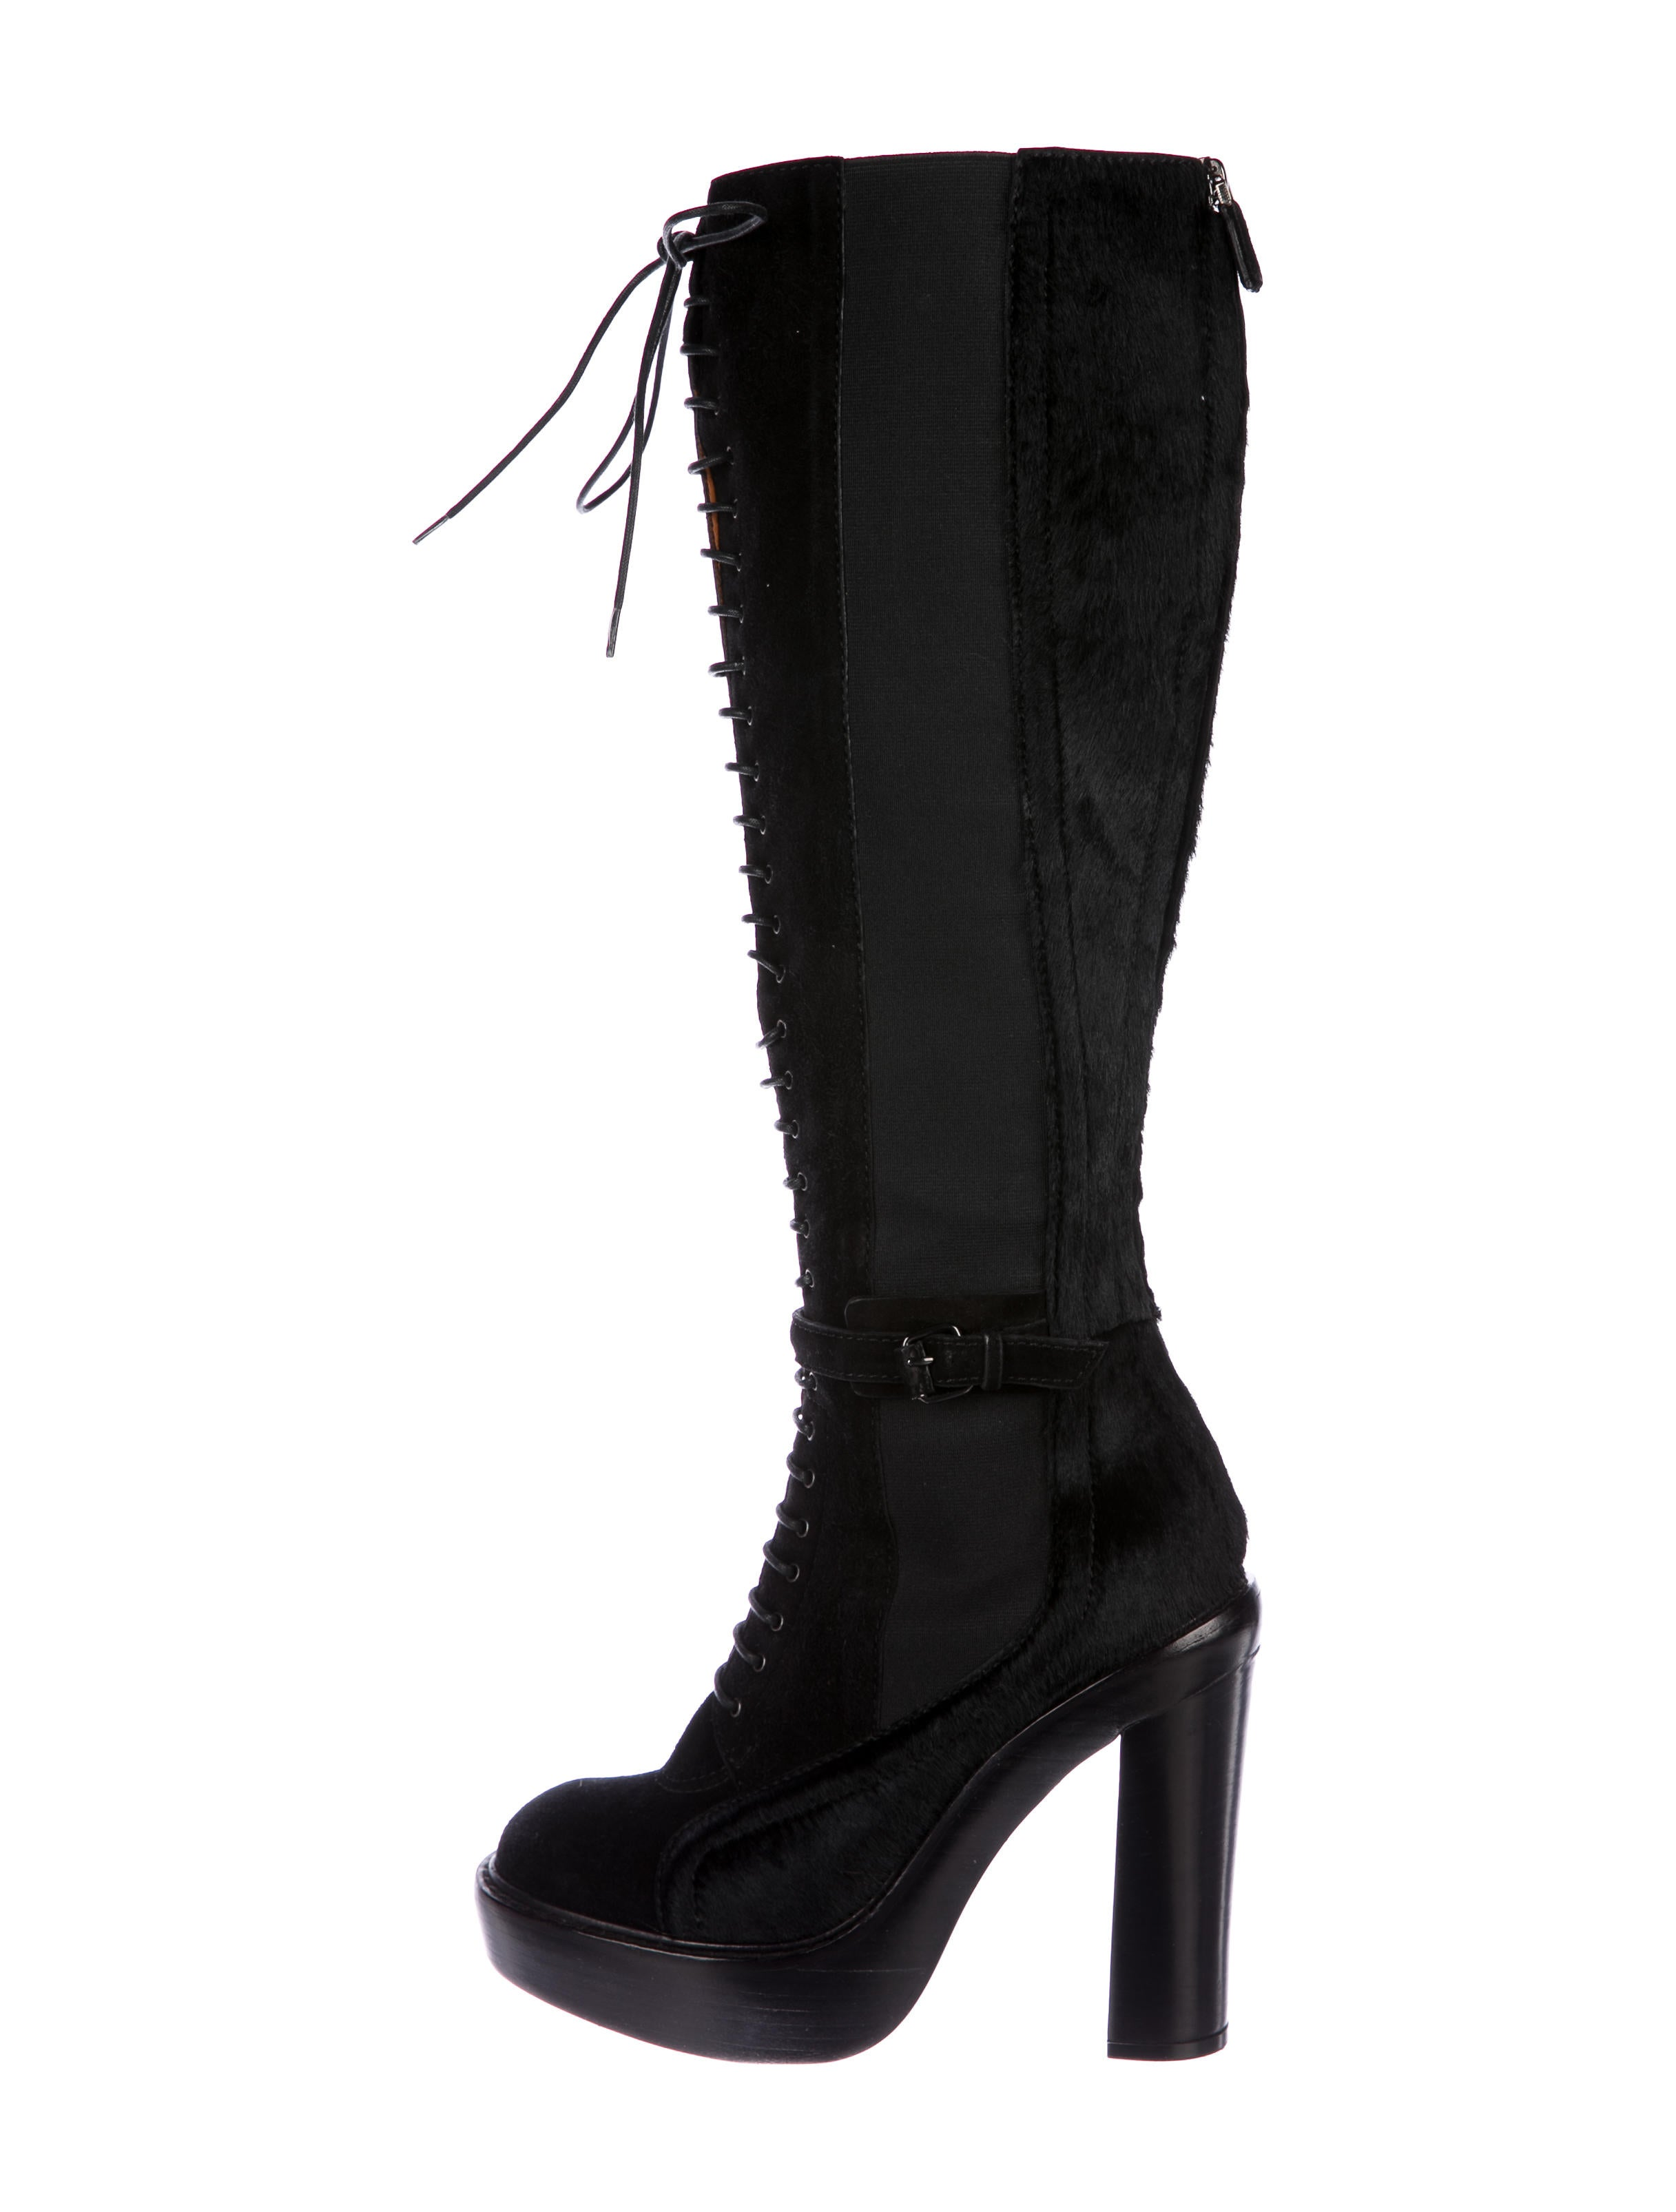 buy cheap cheapest price Givenchy Suede Ponyhair-Accented Boots get authentic cheap online buy cheap extremely shop cheap online upqiUi5QAH